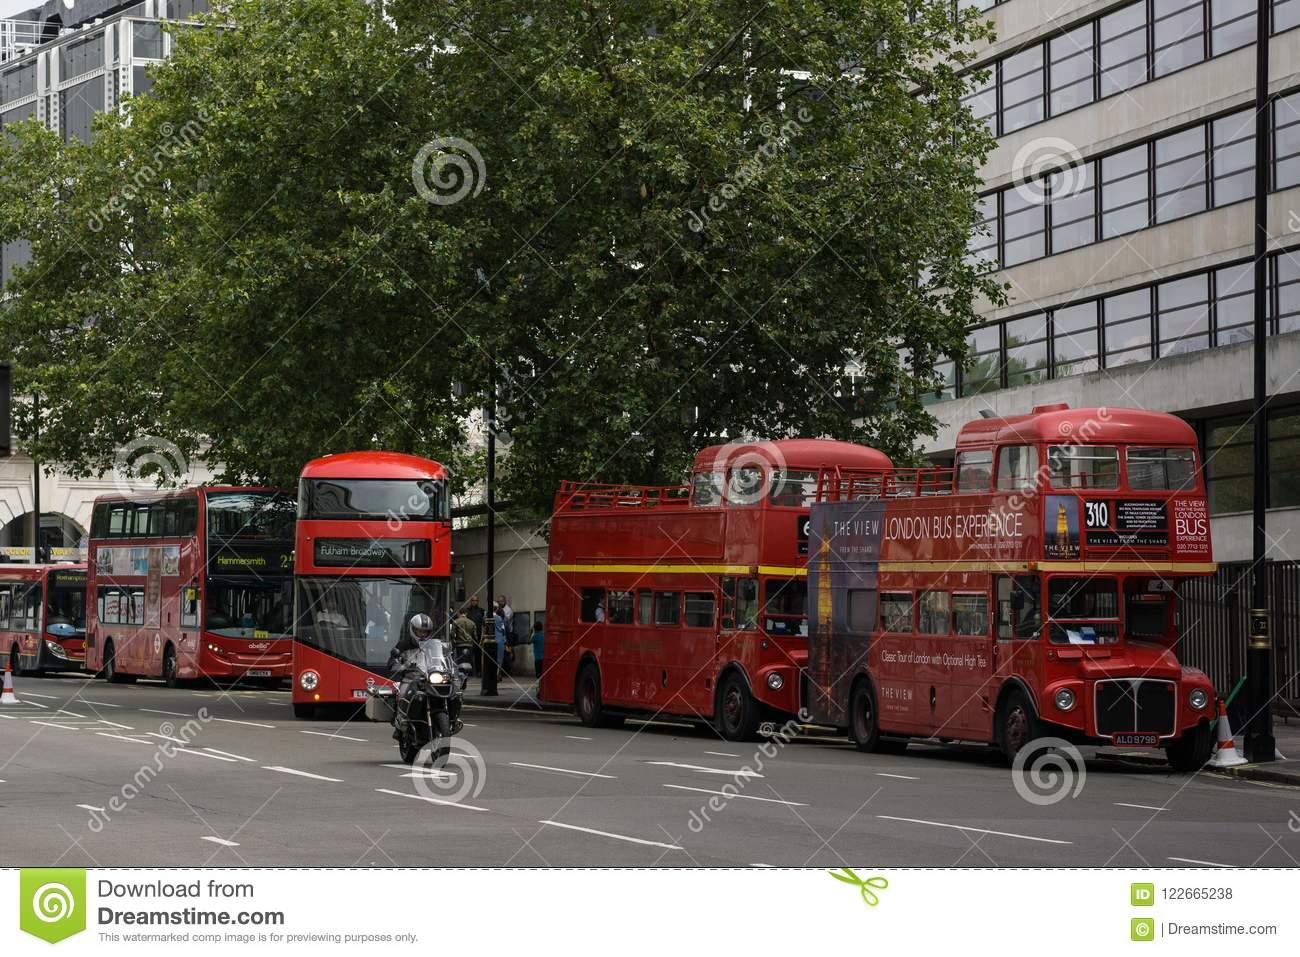 London red buses of old and new style next to eachother